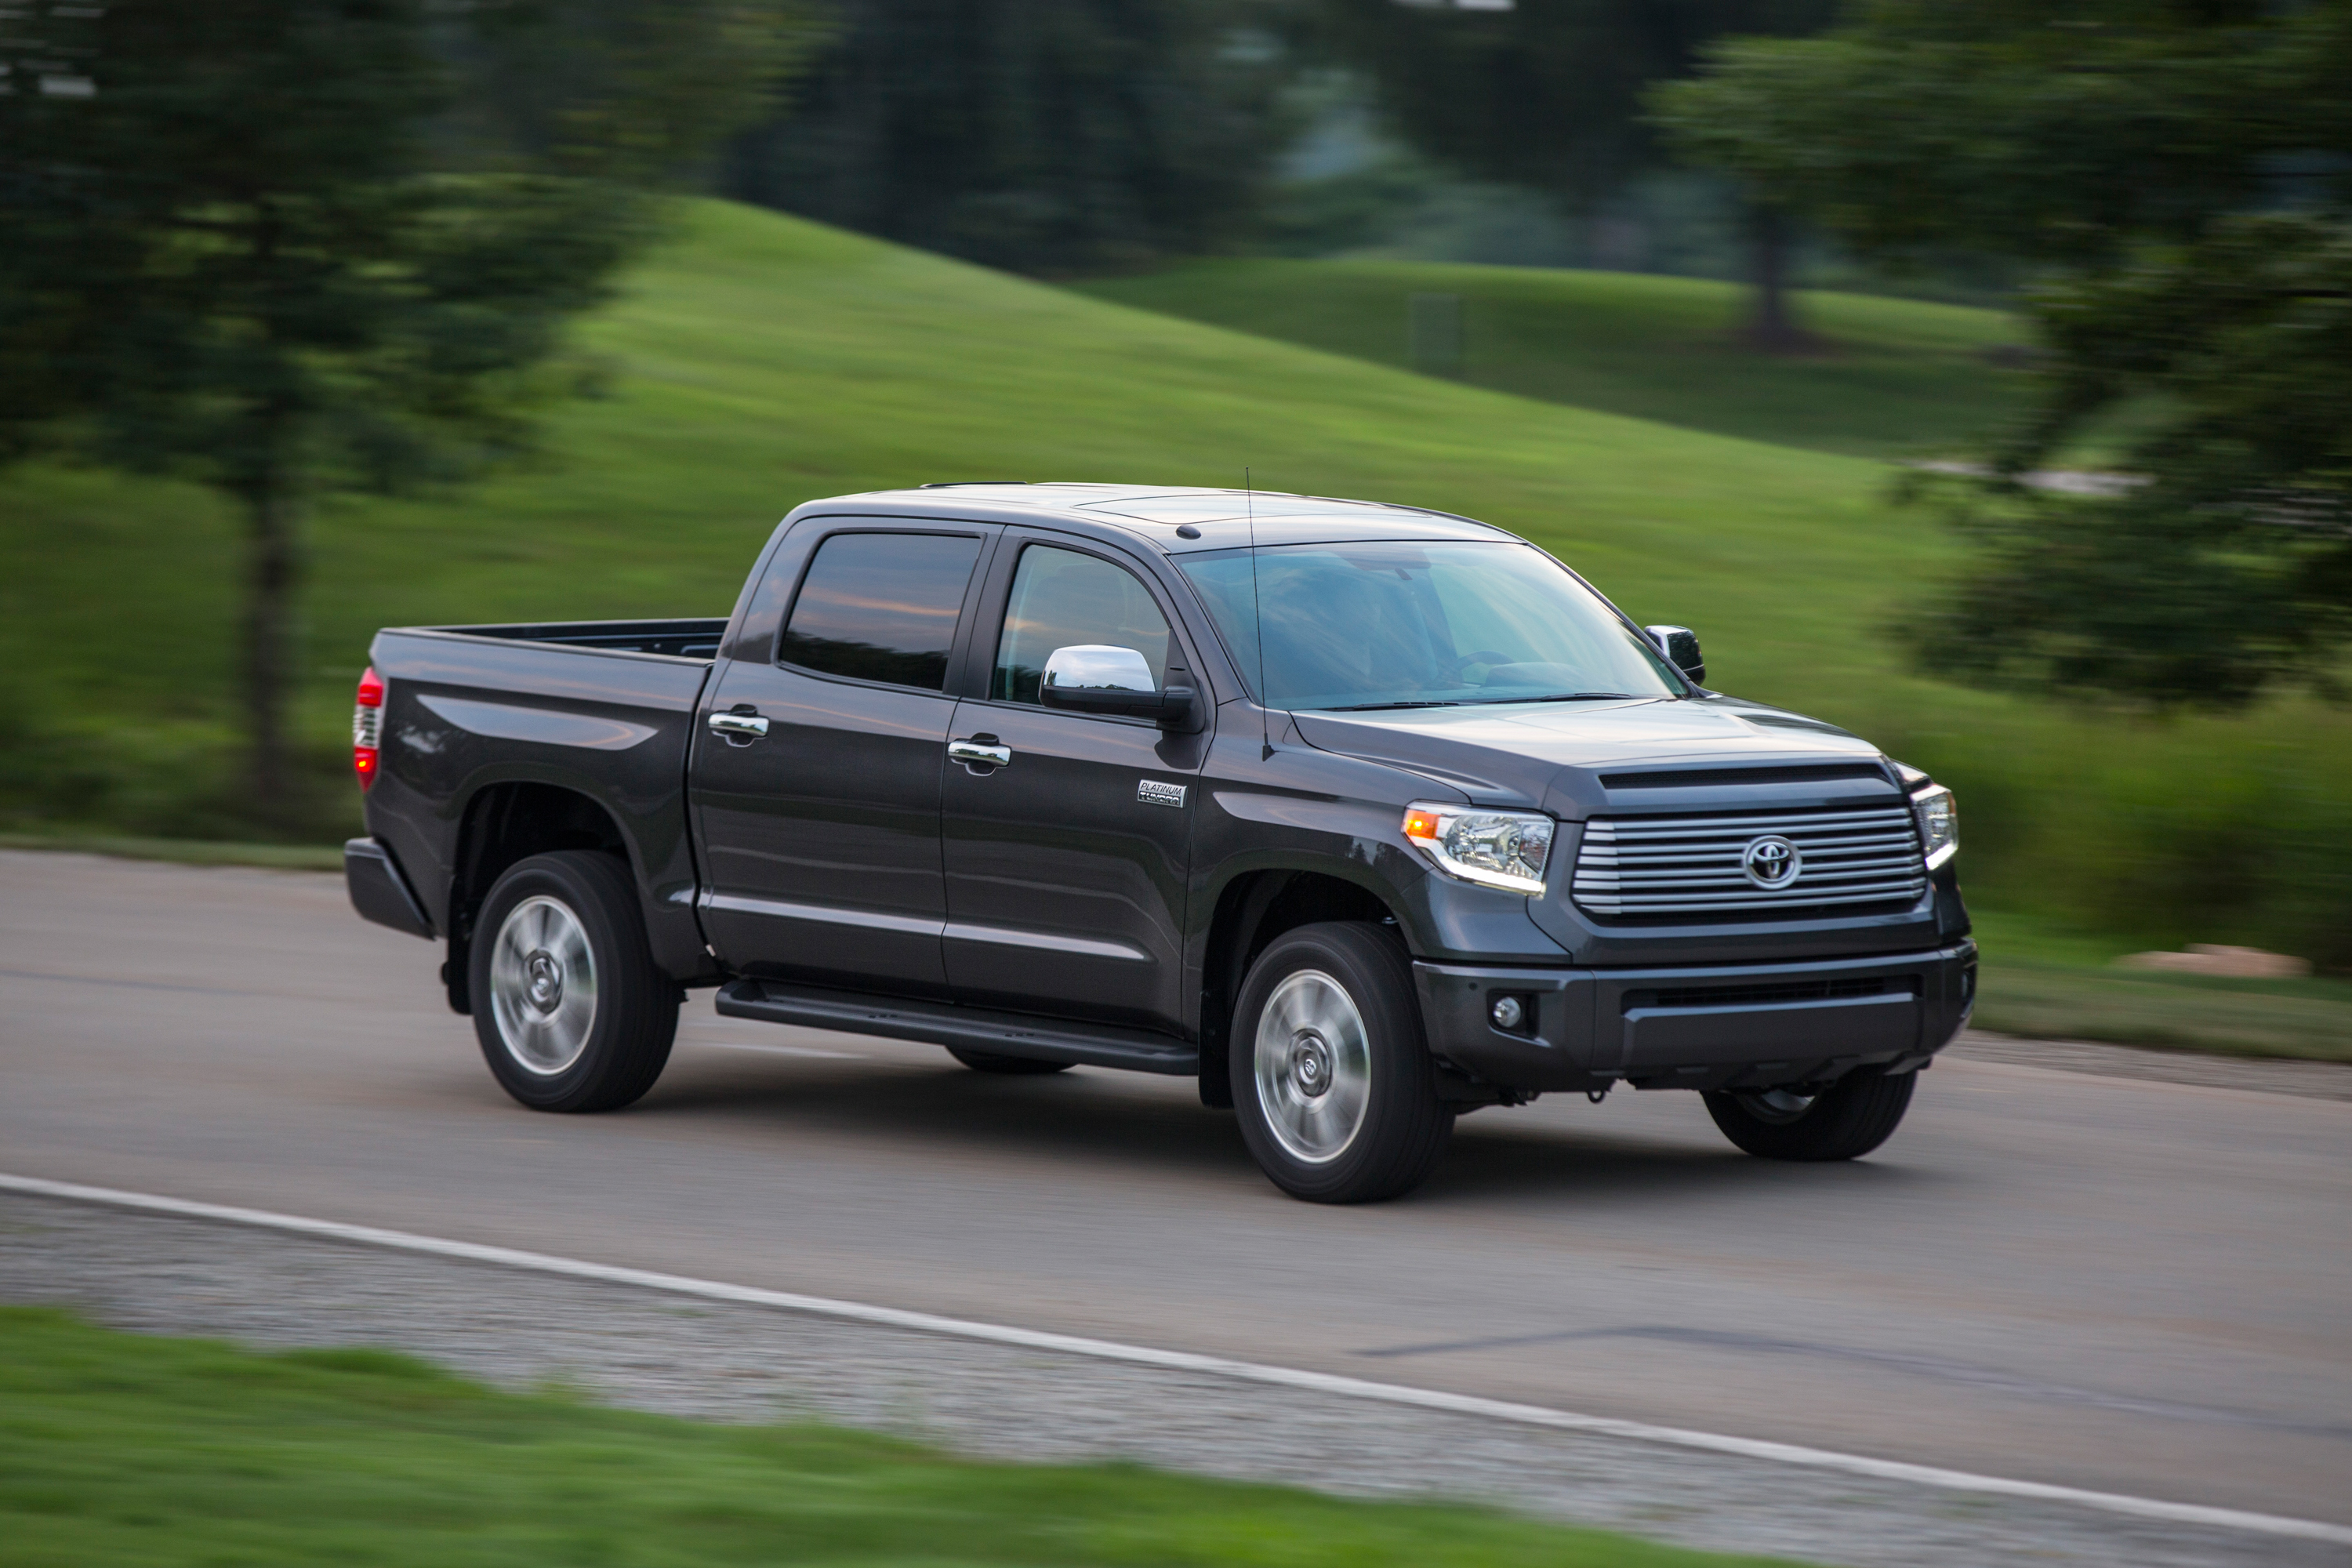 As Big As Texas The Toyota Tundra Is Brawny Everywhere But Brainy And Comfortable Where It Counts Toyota Usa Newsroom